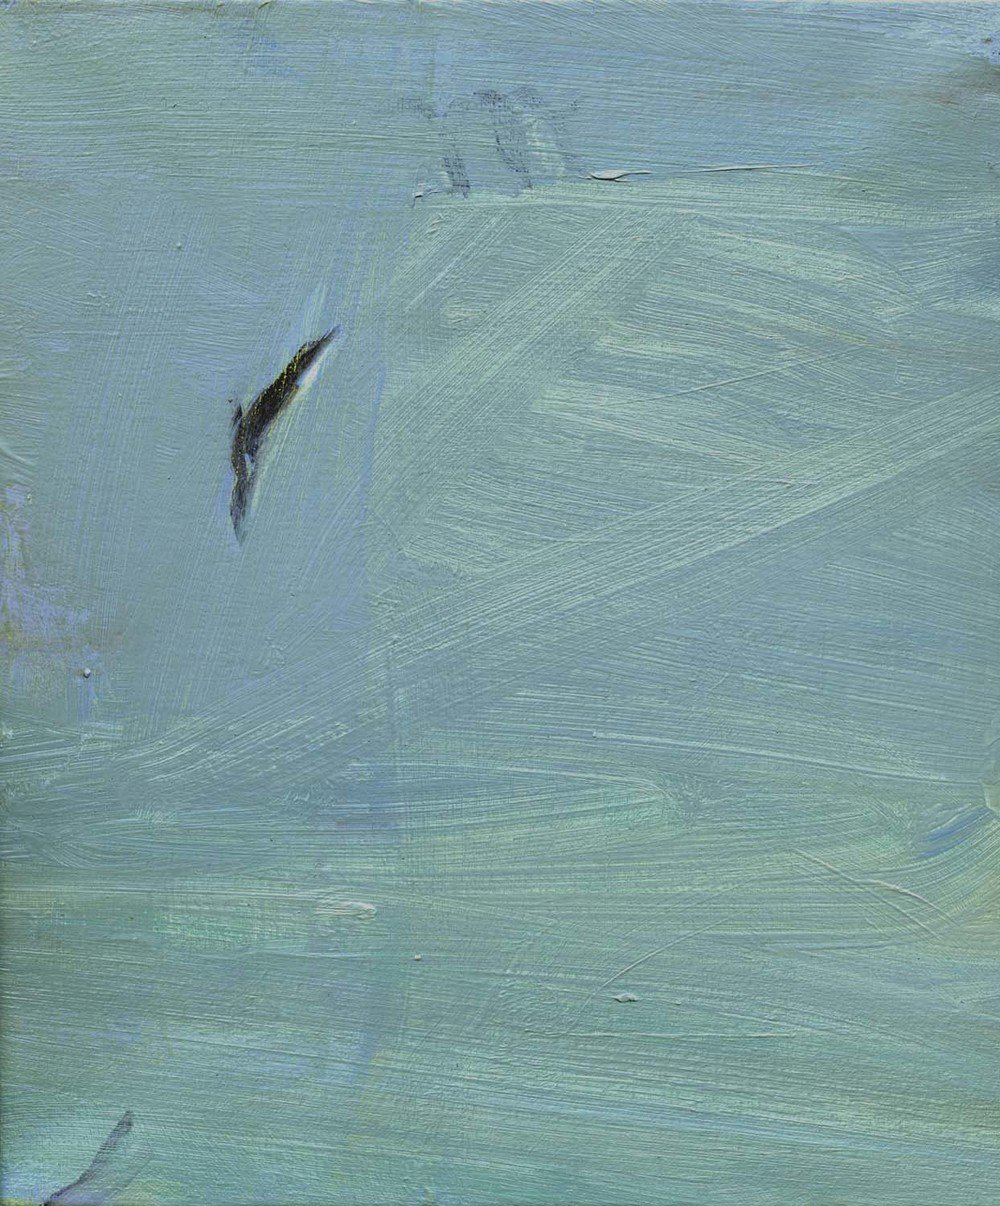 Diver, 2008 26.5 x 23 cm oil on canvas